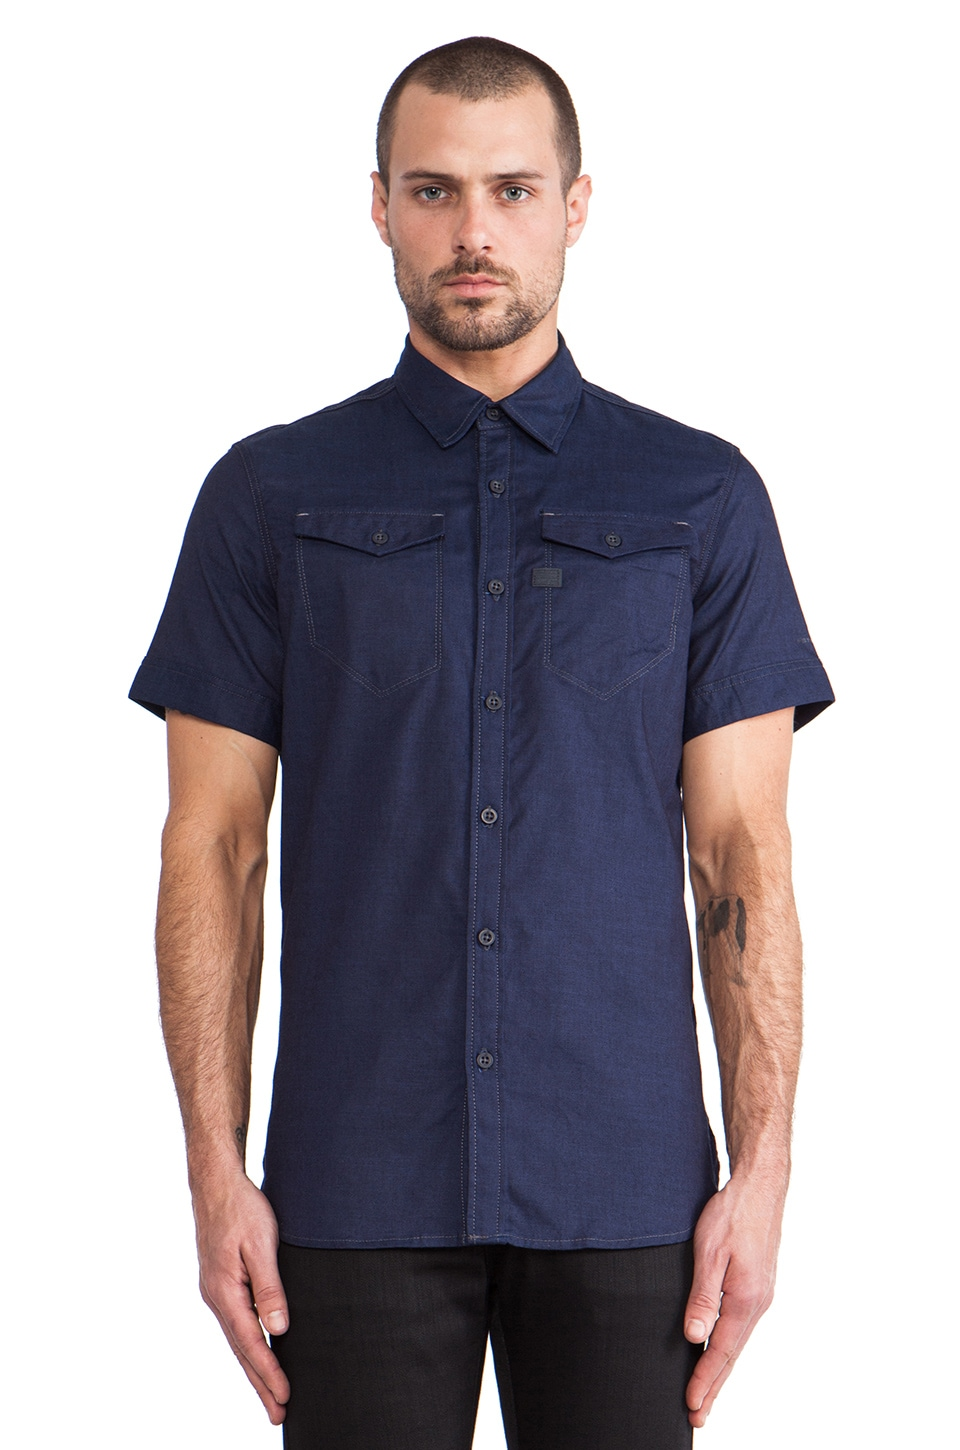 G-Star Tacoma Shirt Naco Denim in Raw